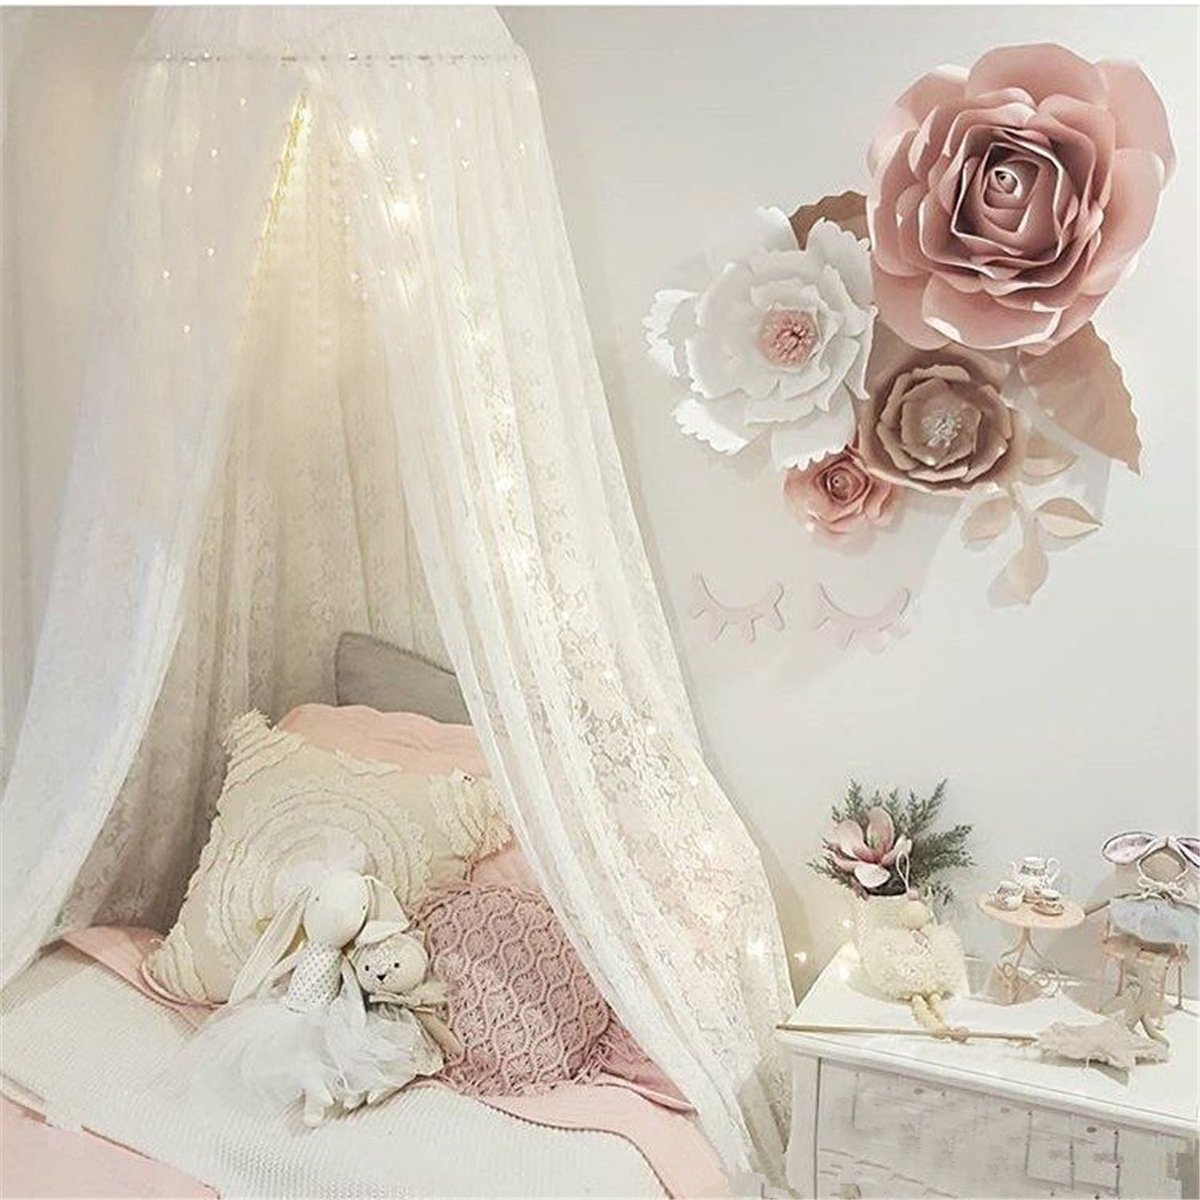 Princess Bed Canopy for Girls, Dix-Rainbow Lace Crib Canopy Net for Baby Toddler Bed Canopy Tent Fairy Crib Mosquito Net Kids Reading Nook Play Castle - Premium White Lace